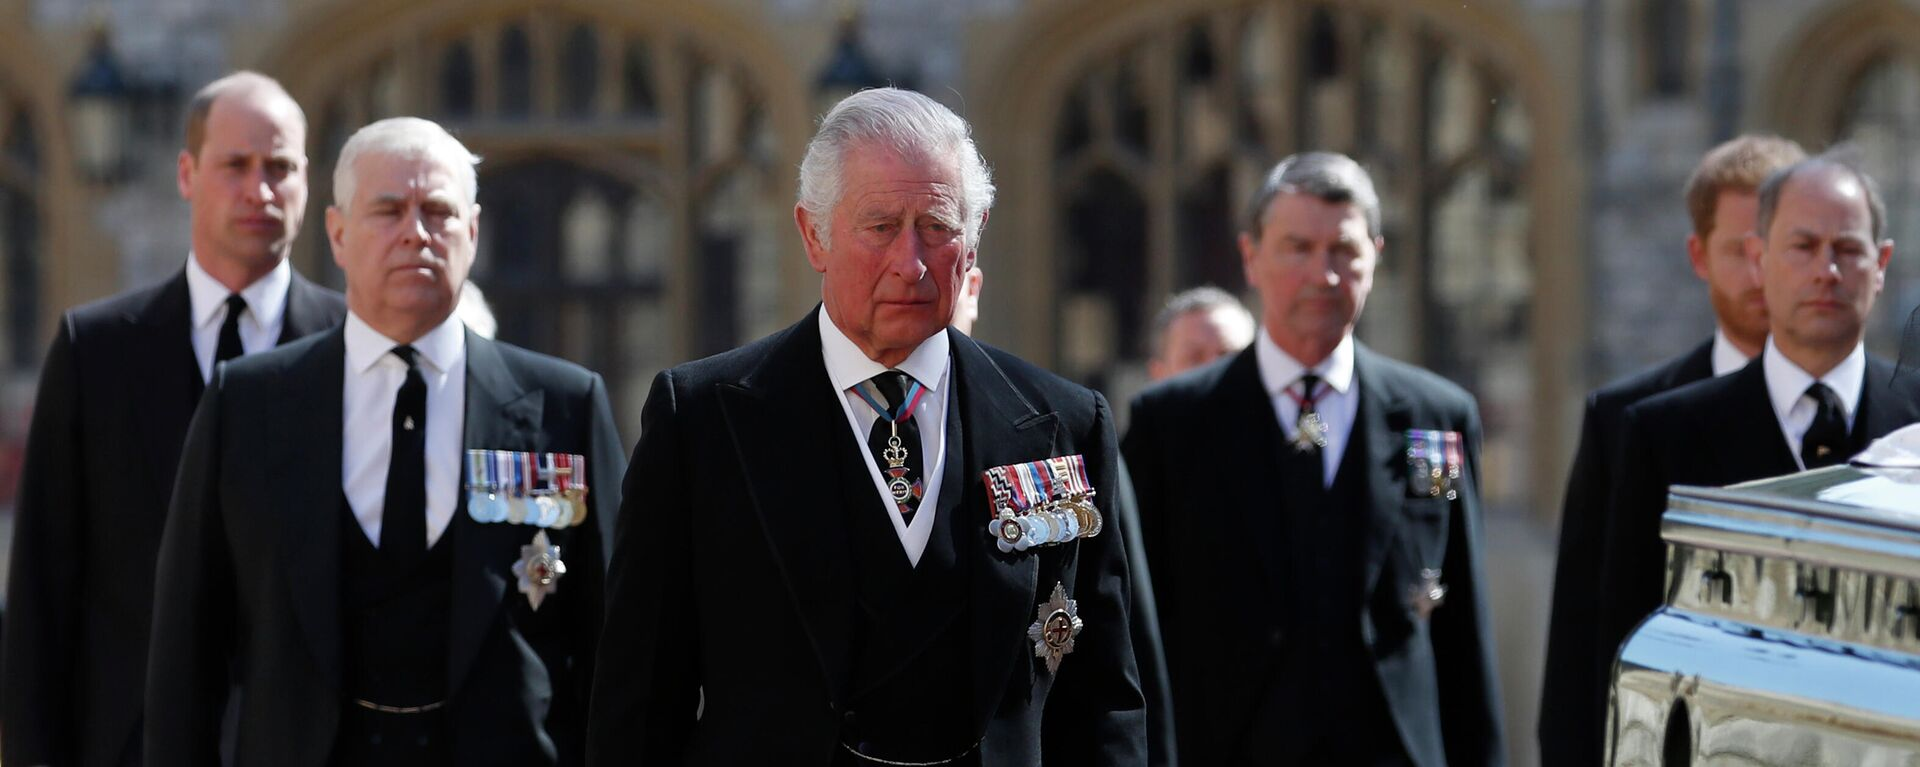 From left, Britain's Prince William, Prince Andrew, Prince Charles, Tim Laurence, Prince Harry and Prince Edward follow the coffin in a ceremonial procession for the funeral of Britain's Prince Philip inside Windsor Castle in Windsor, England Saturday April 17, 2021. - Sputnik International, 1920, 11.10.2021